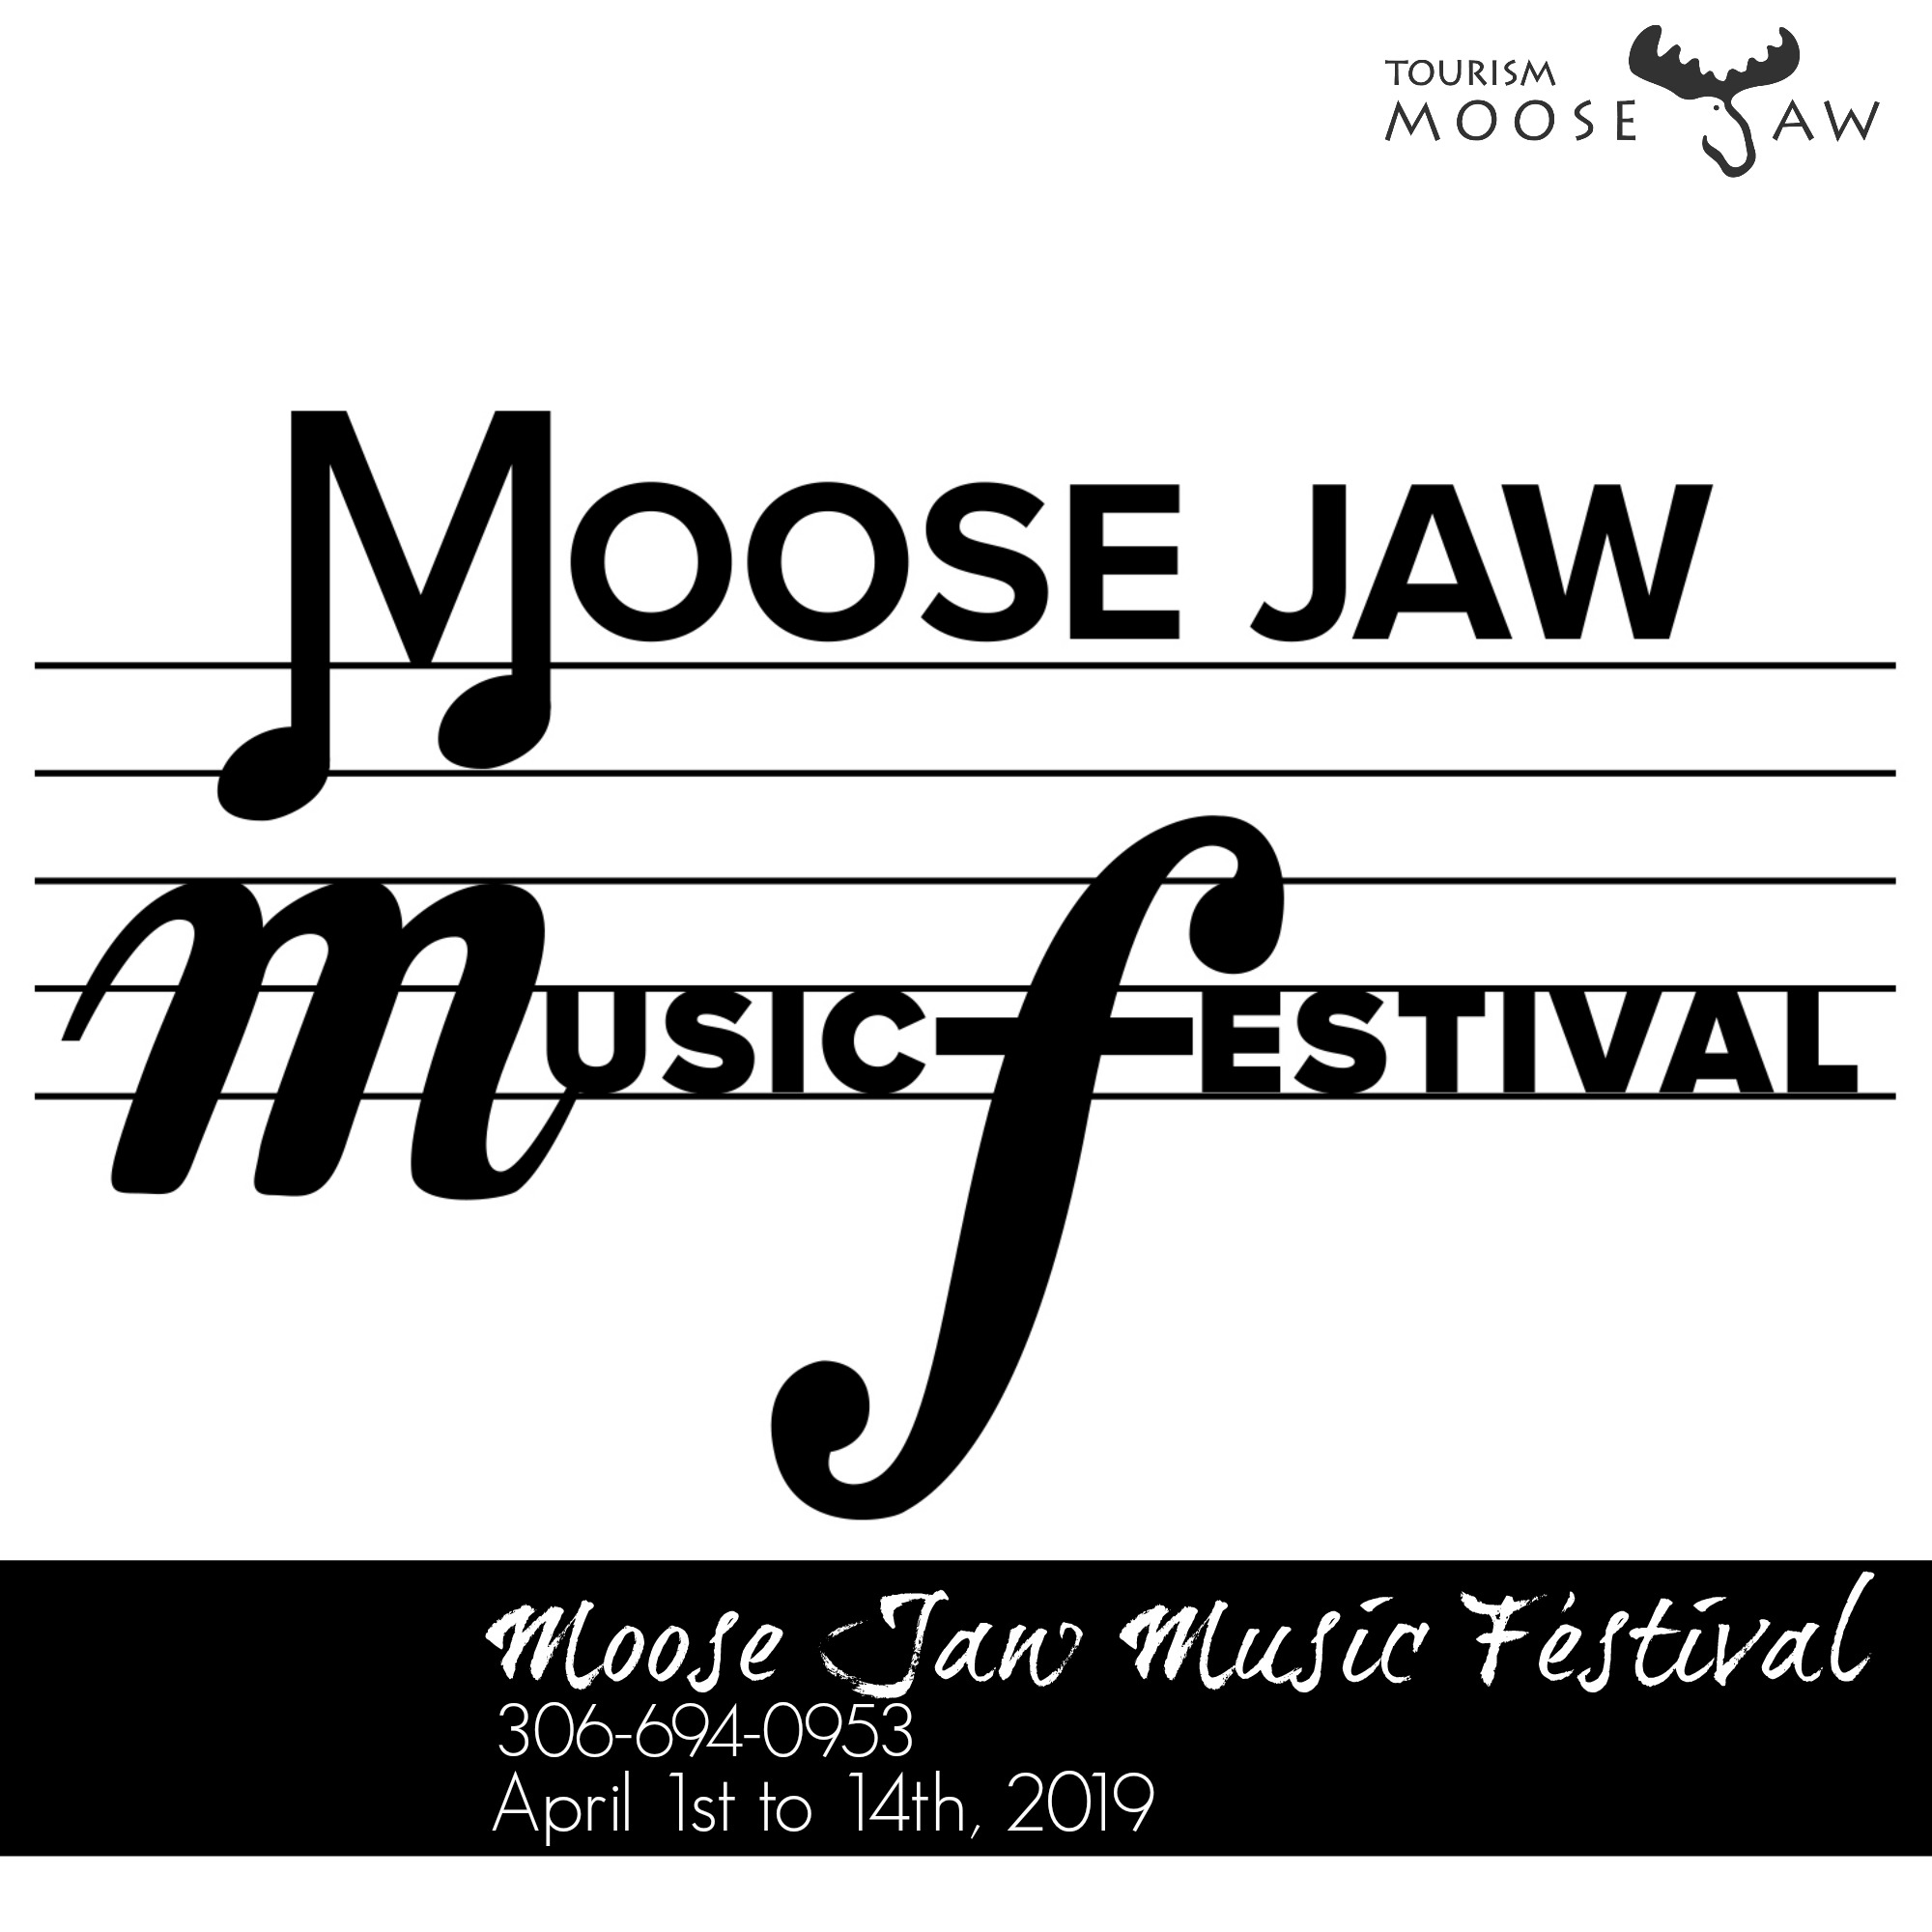 moose jaw music festival.jpg